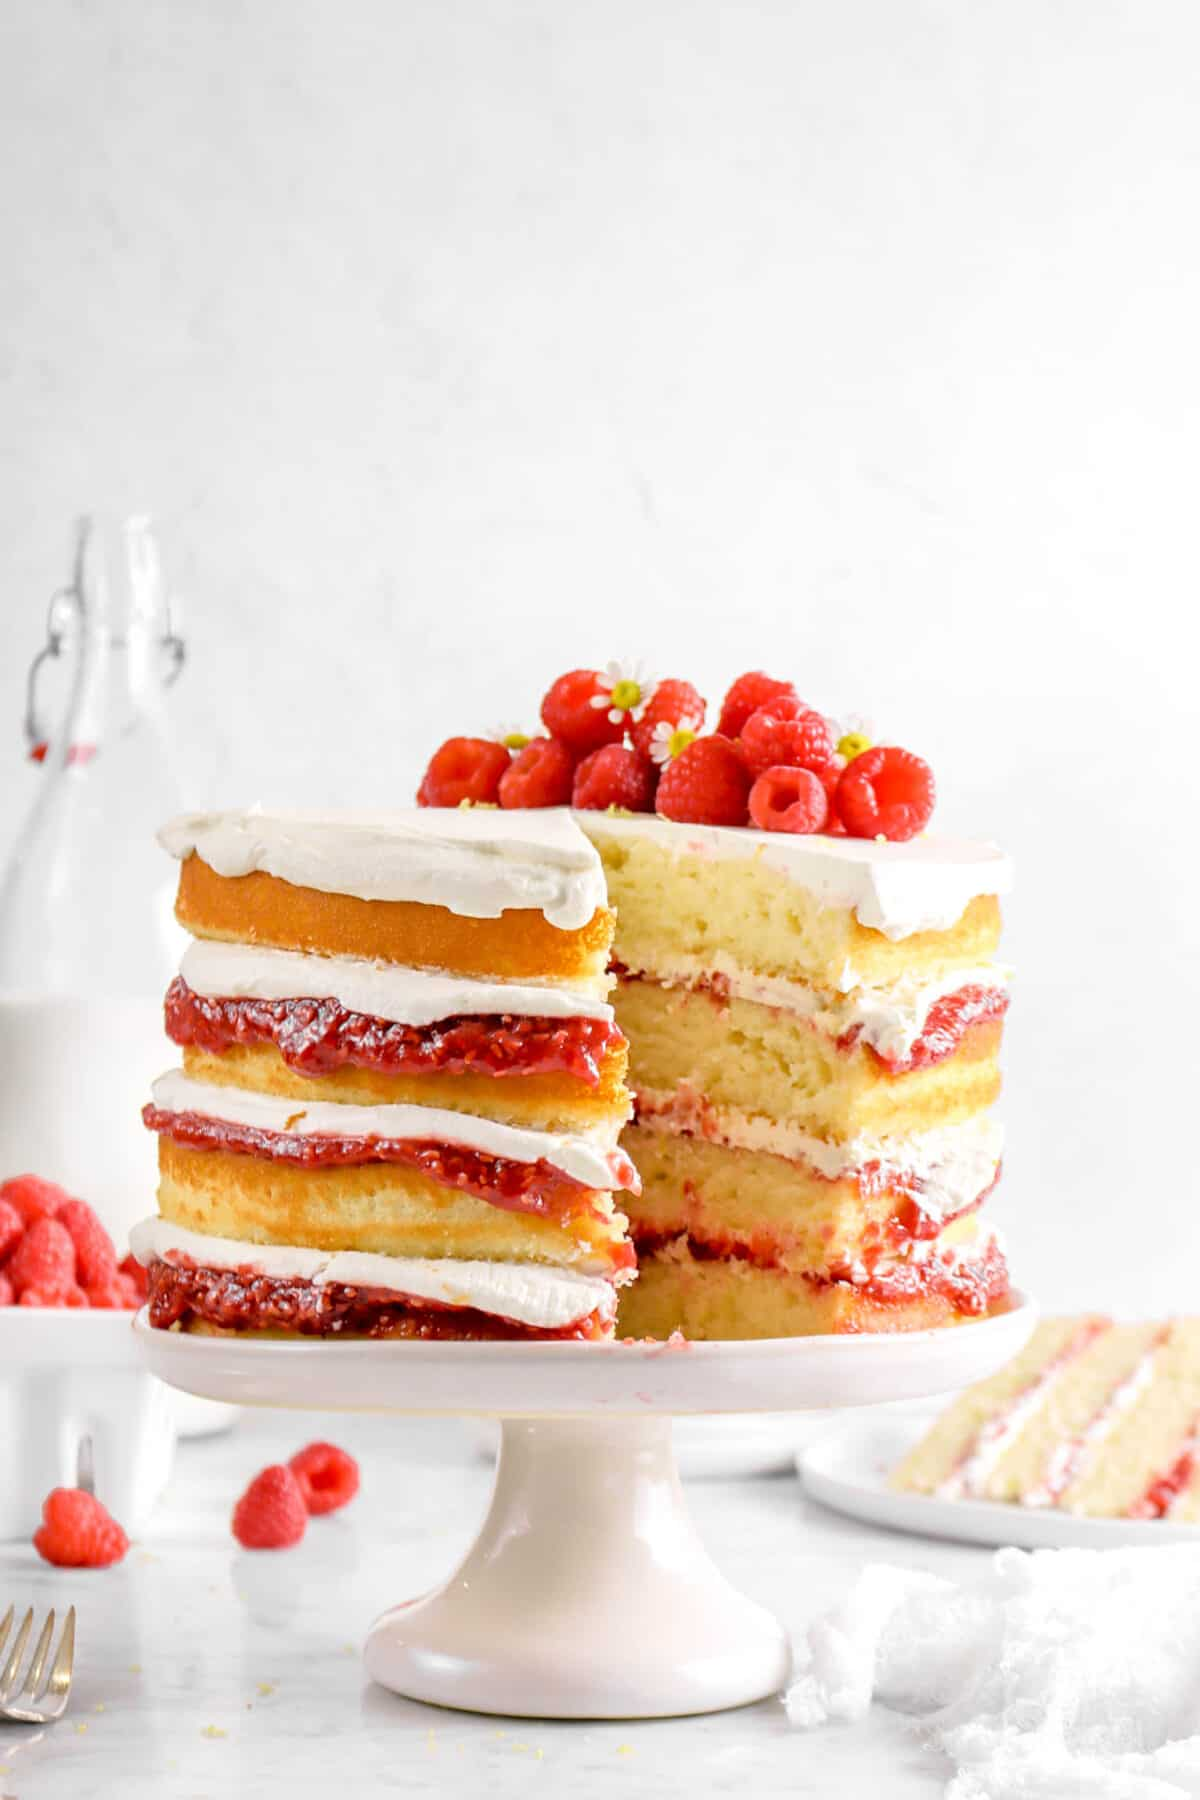 lemon and raspberry jam cake with a slice taken out of it on a white cake plate